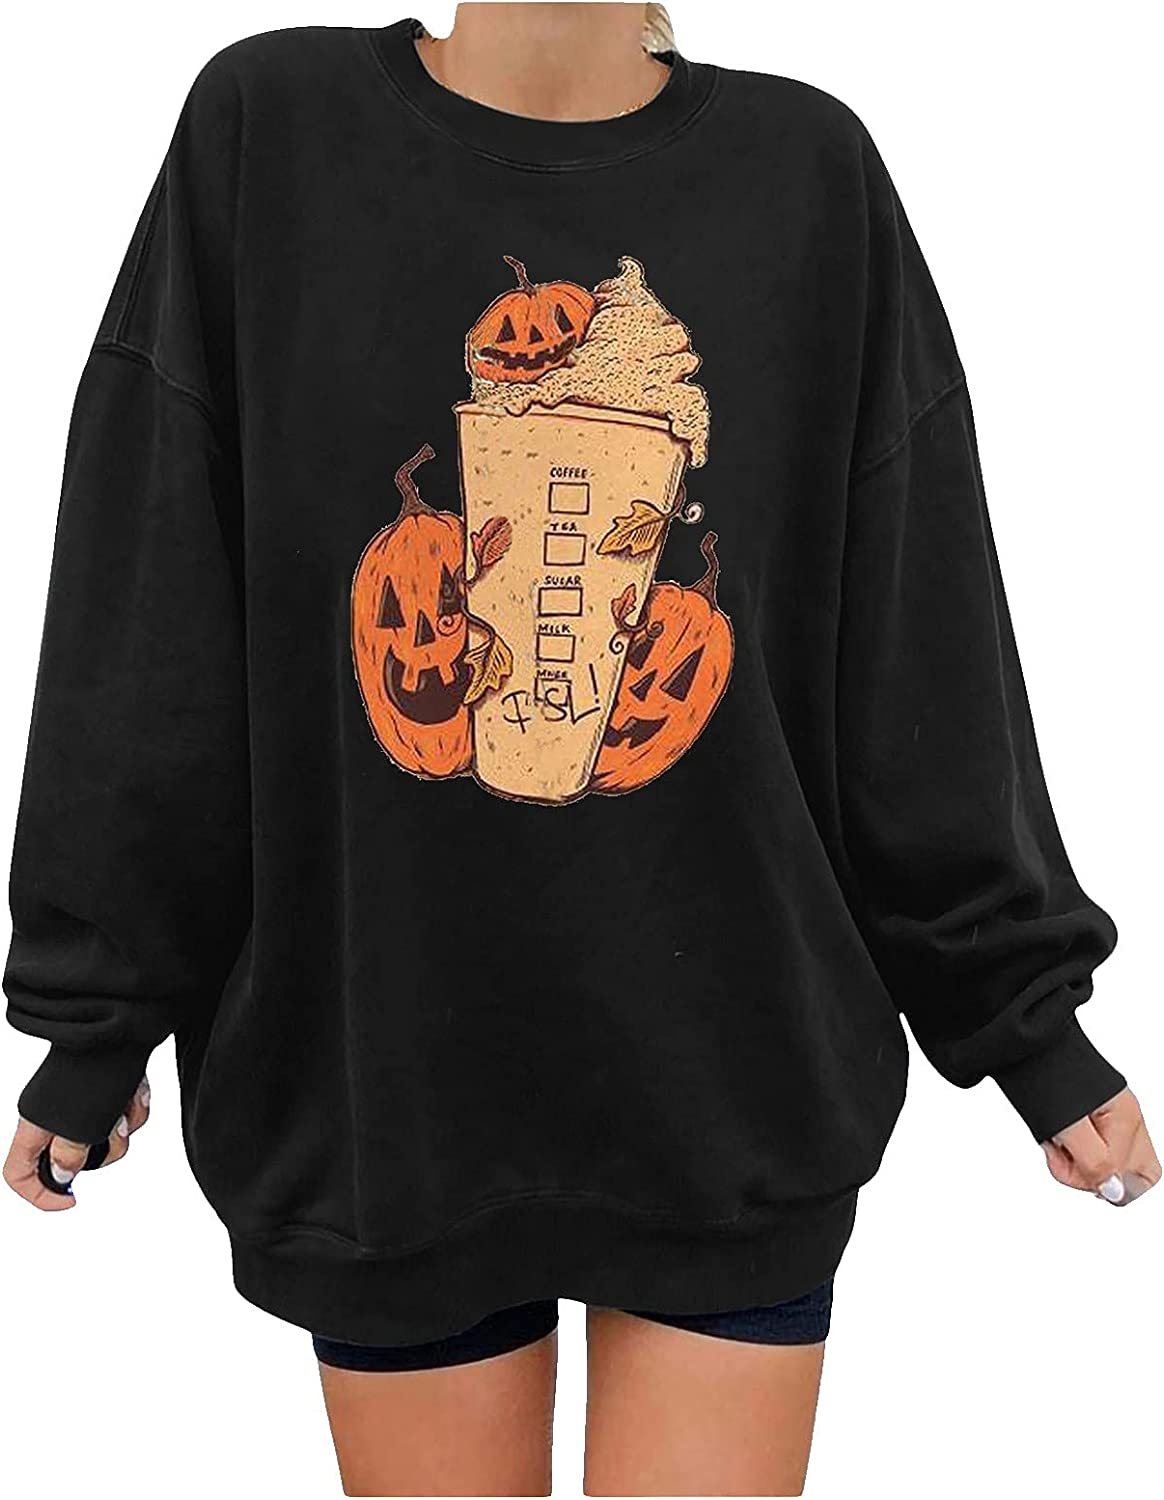 Oversized Halloween Cartoon Pumpkin Print Sweater Pullover for Woman Plus Size Loose O Neck Long Sleeve Blouse Tops